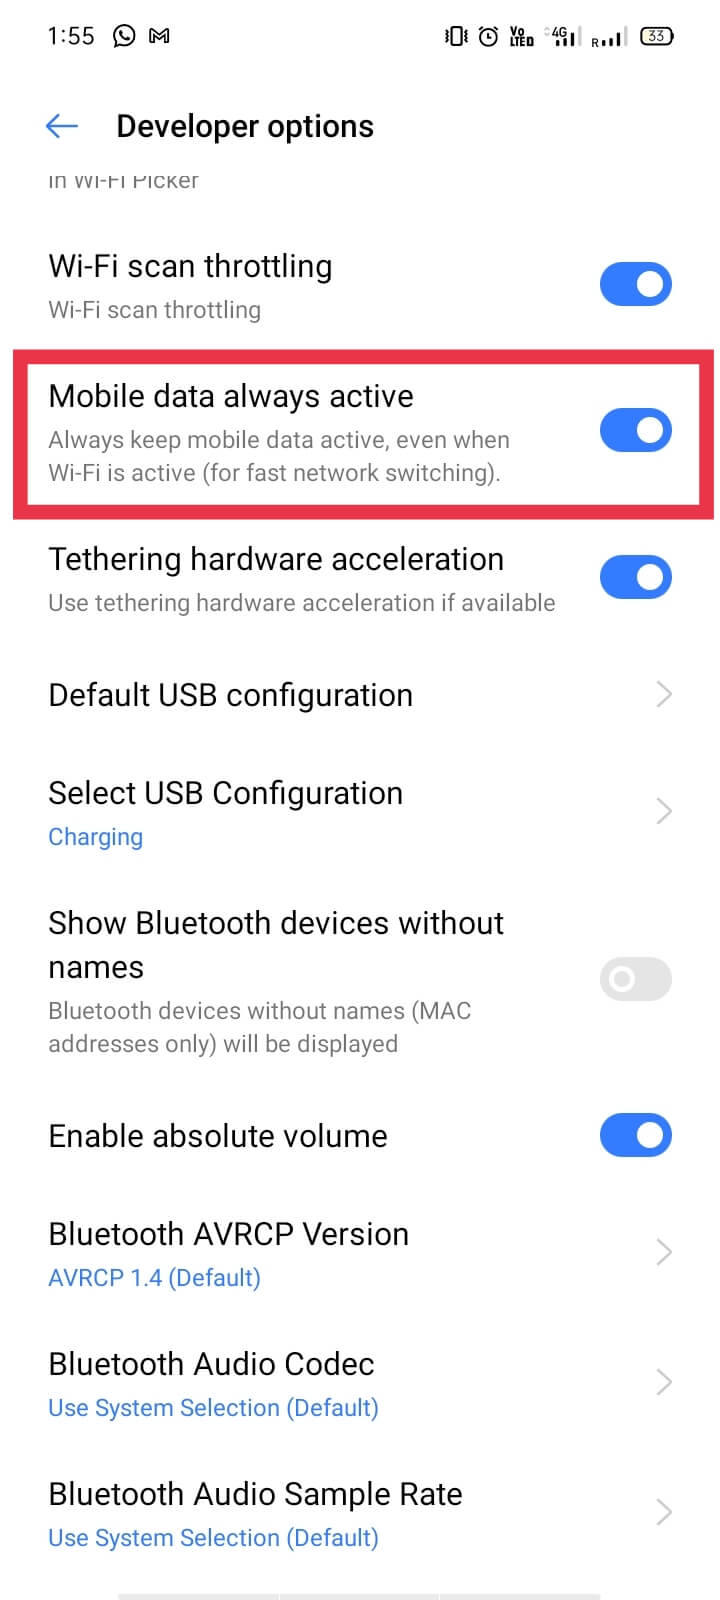 Now, under the Developer option, turn on the Mobile data always active option.